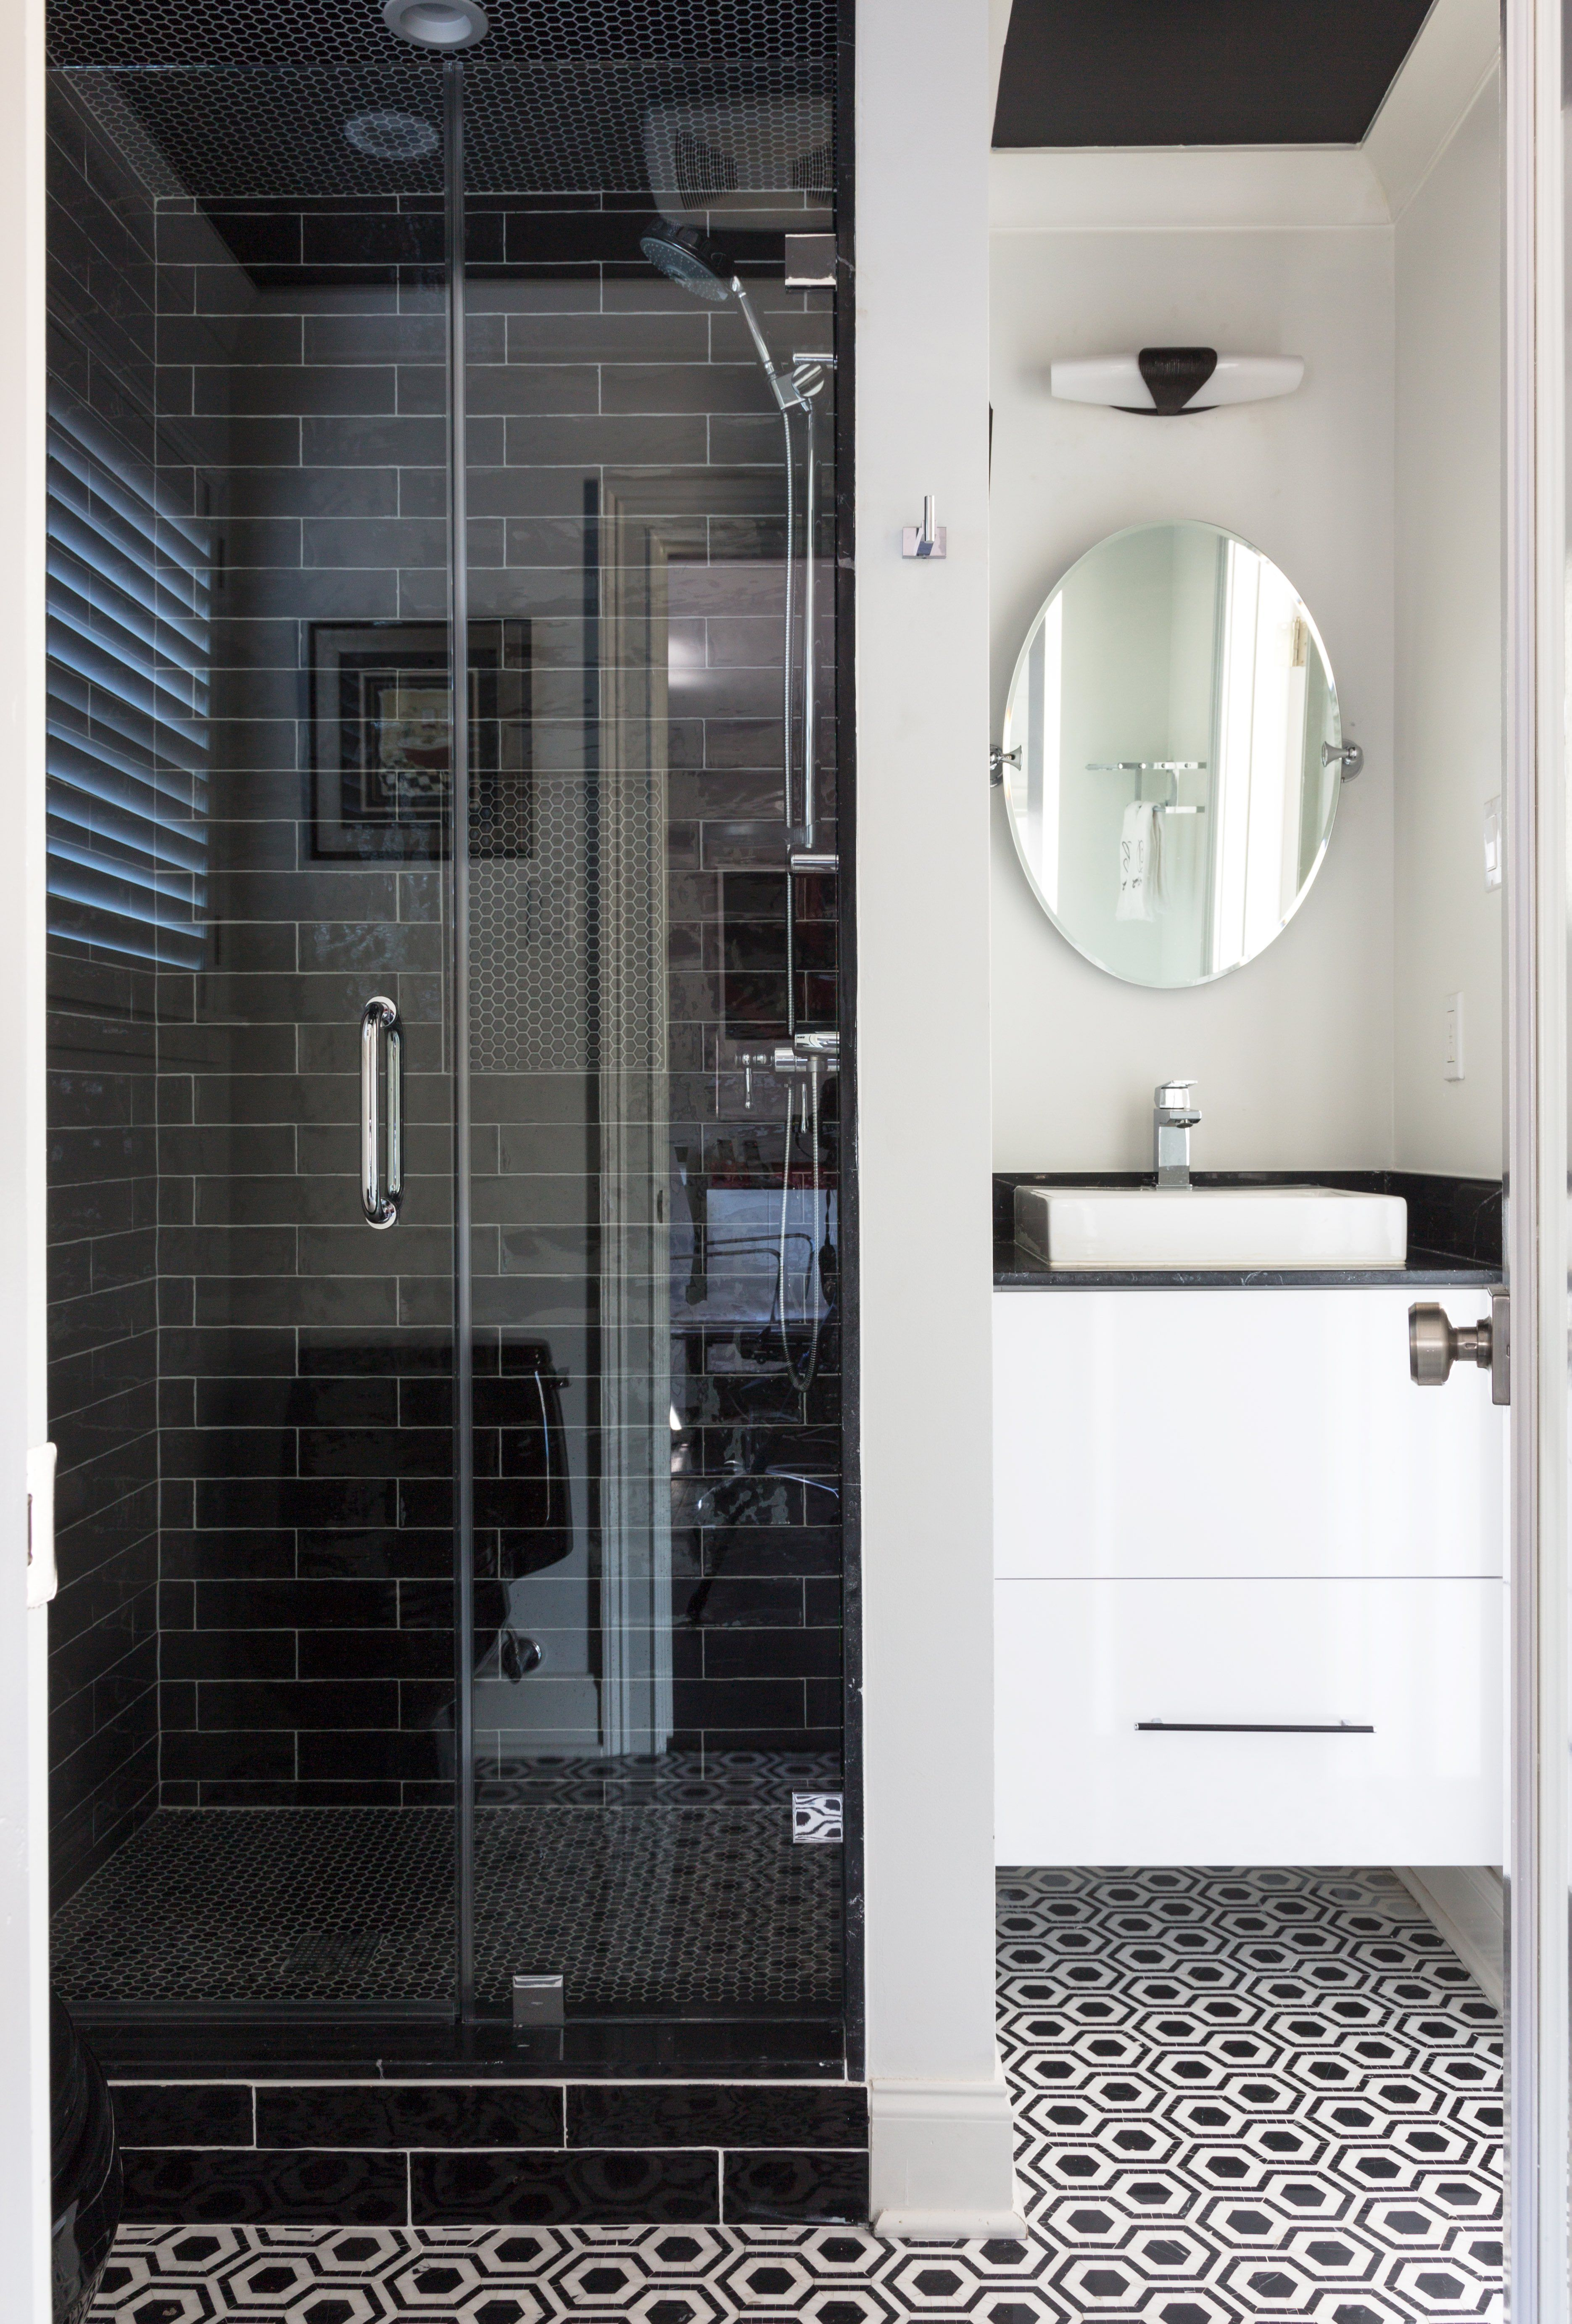 28+ Walk in Shower Ideas - Bathrooms With Walk-In Showers